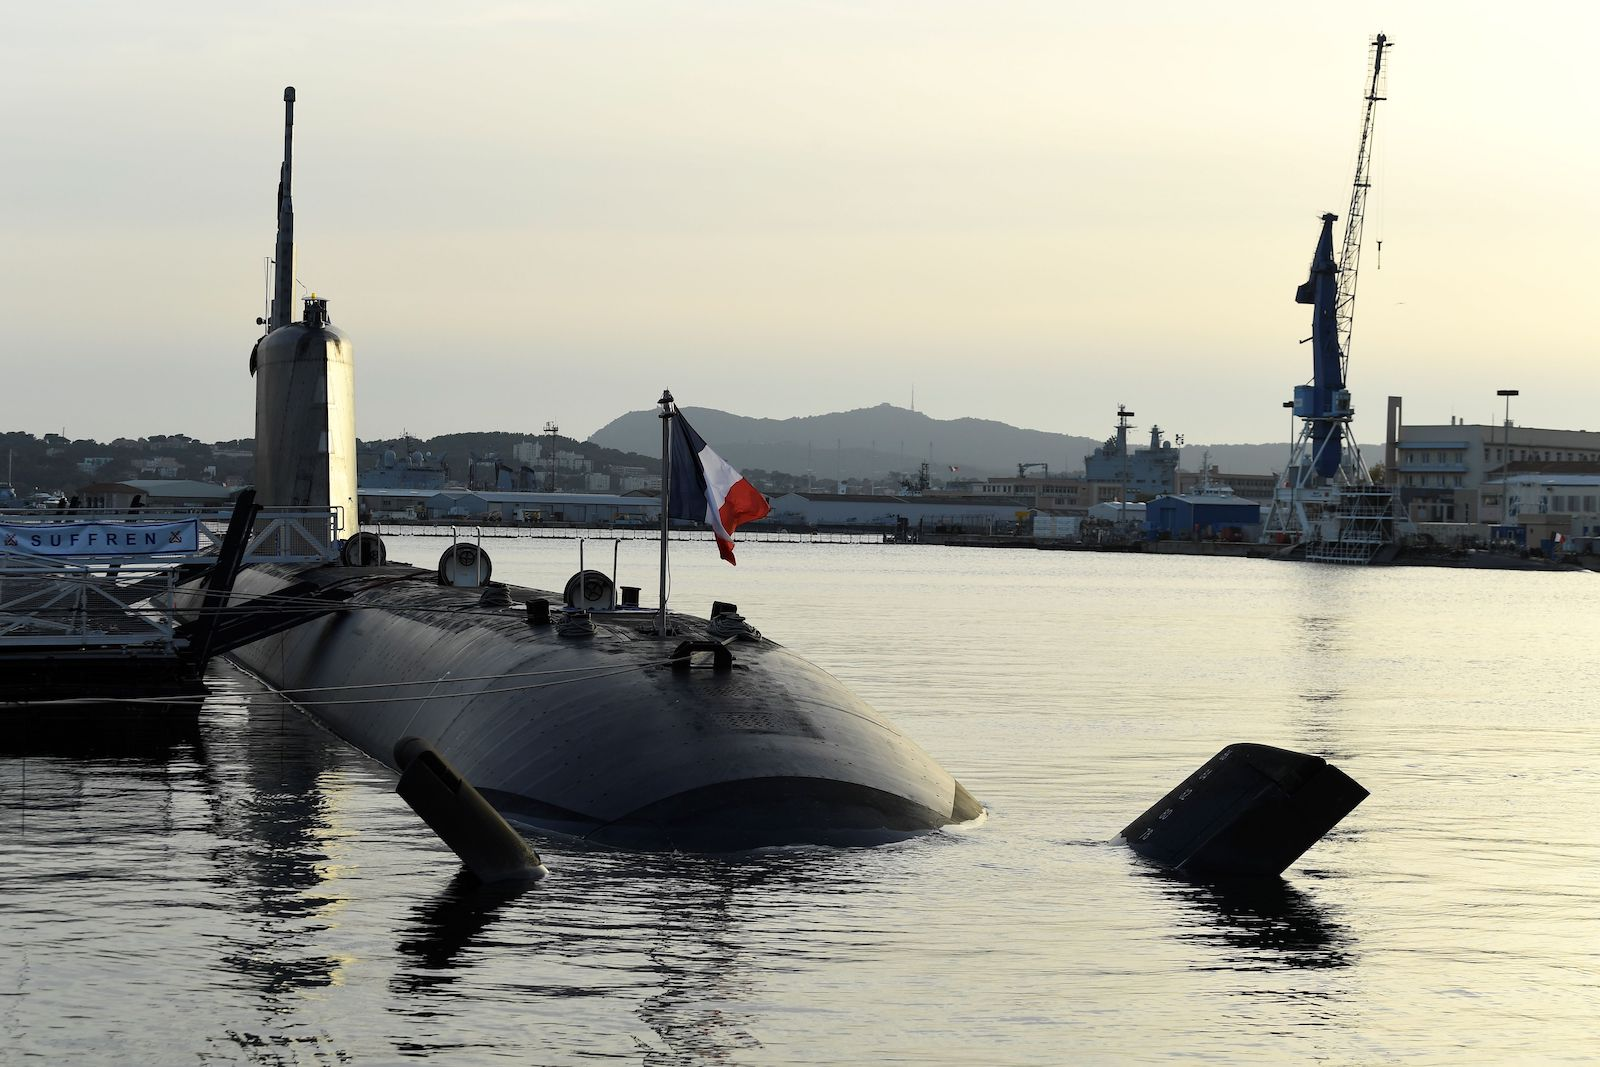 The French navy Barracuda class nuclear attack submarine Suffren docked in Toulon's harbour: Australia had contracted to build 12 diesel-powered variants (Nicolas Tucut/AFP via Getty Images)